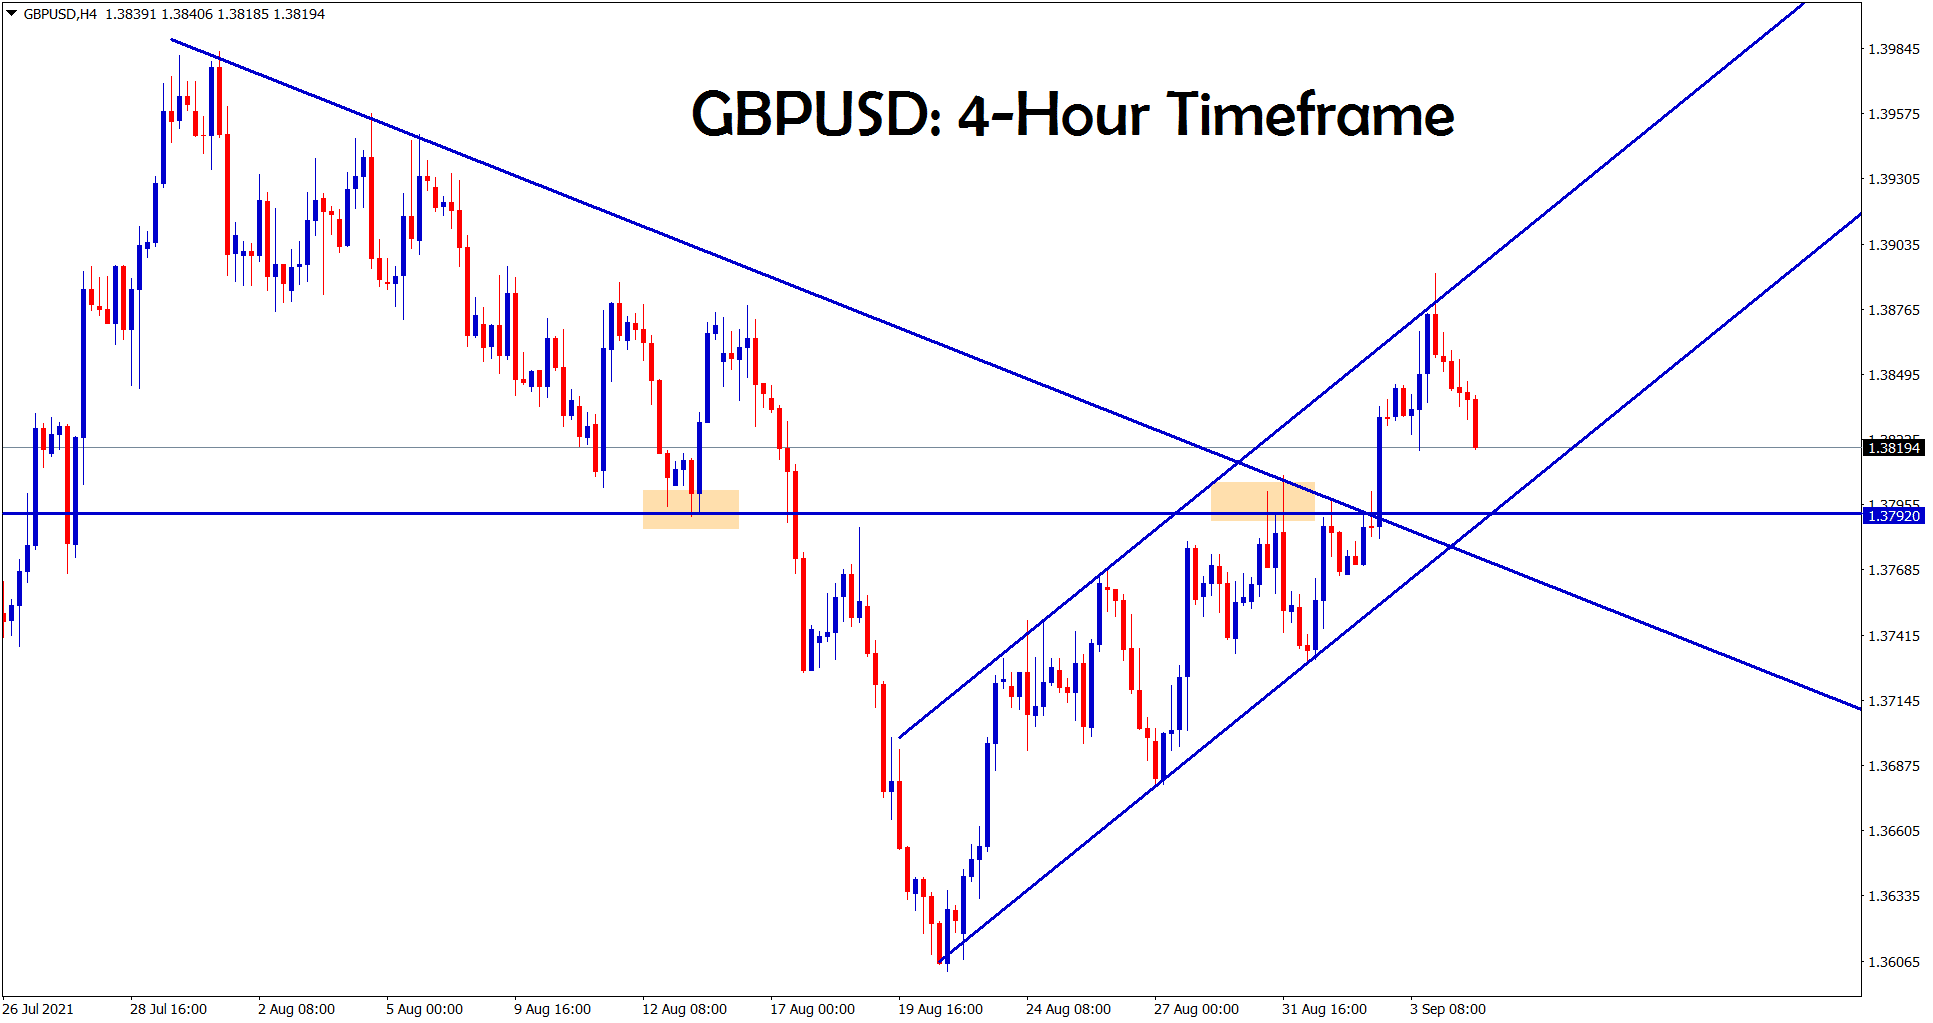 GBPUSD is moving in a channel range